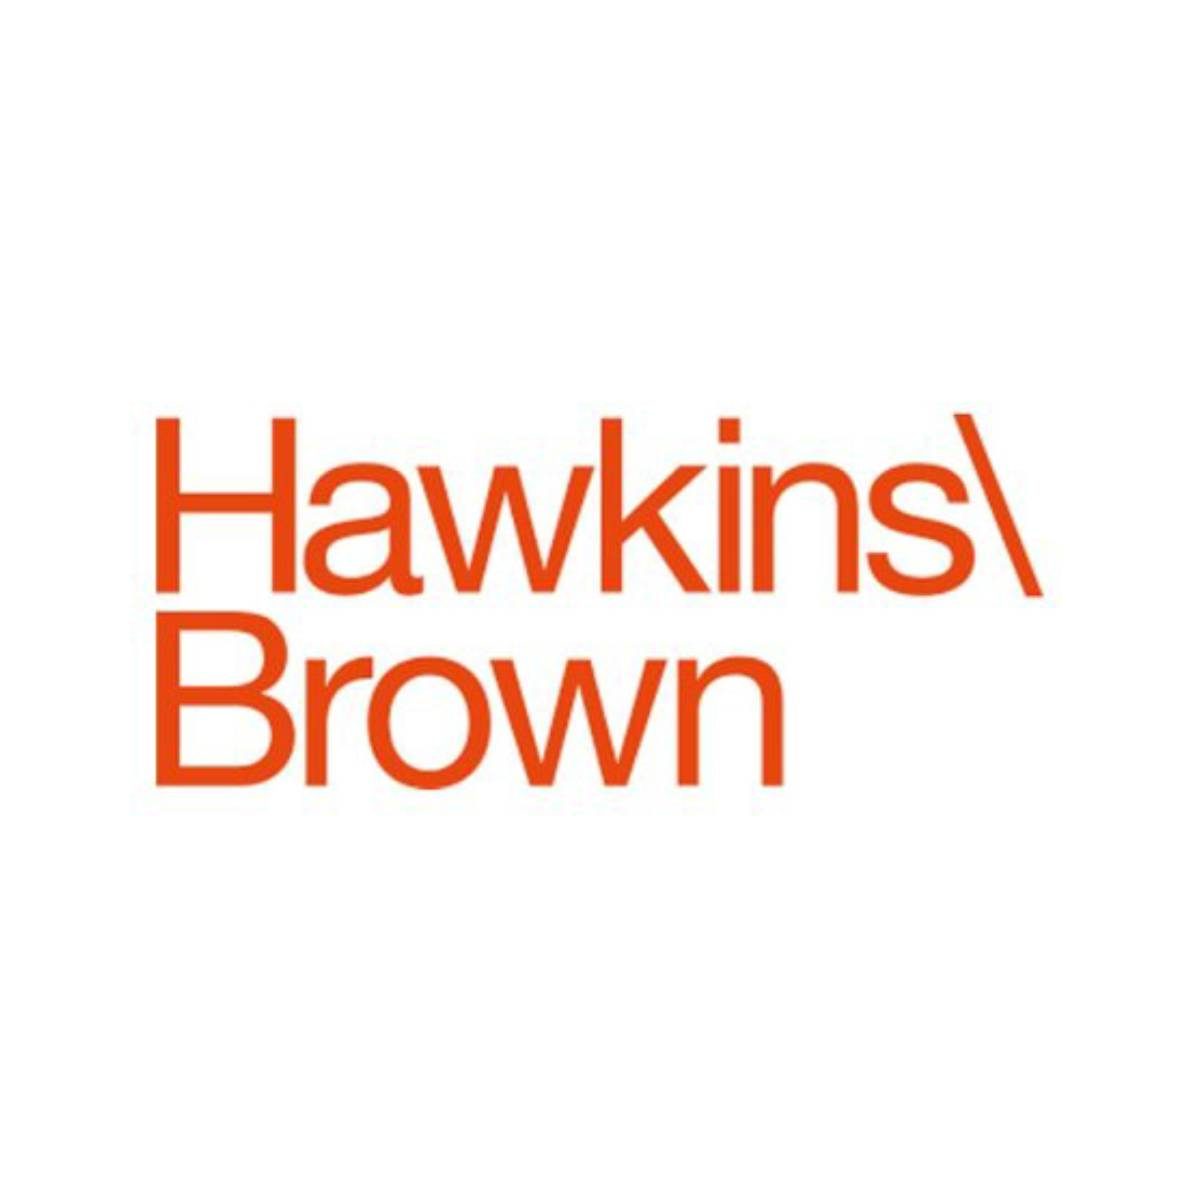 Hawkins Brown.jpg